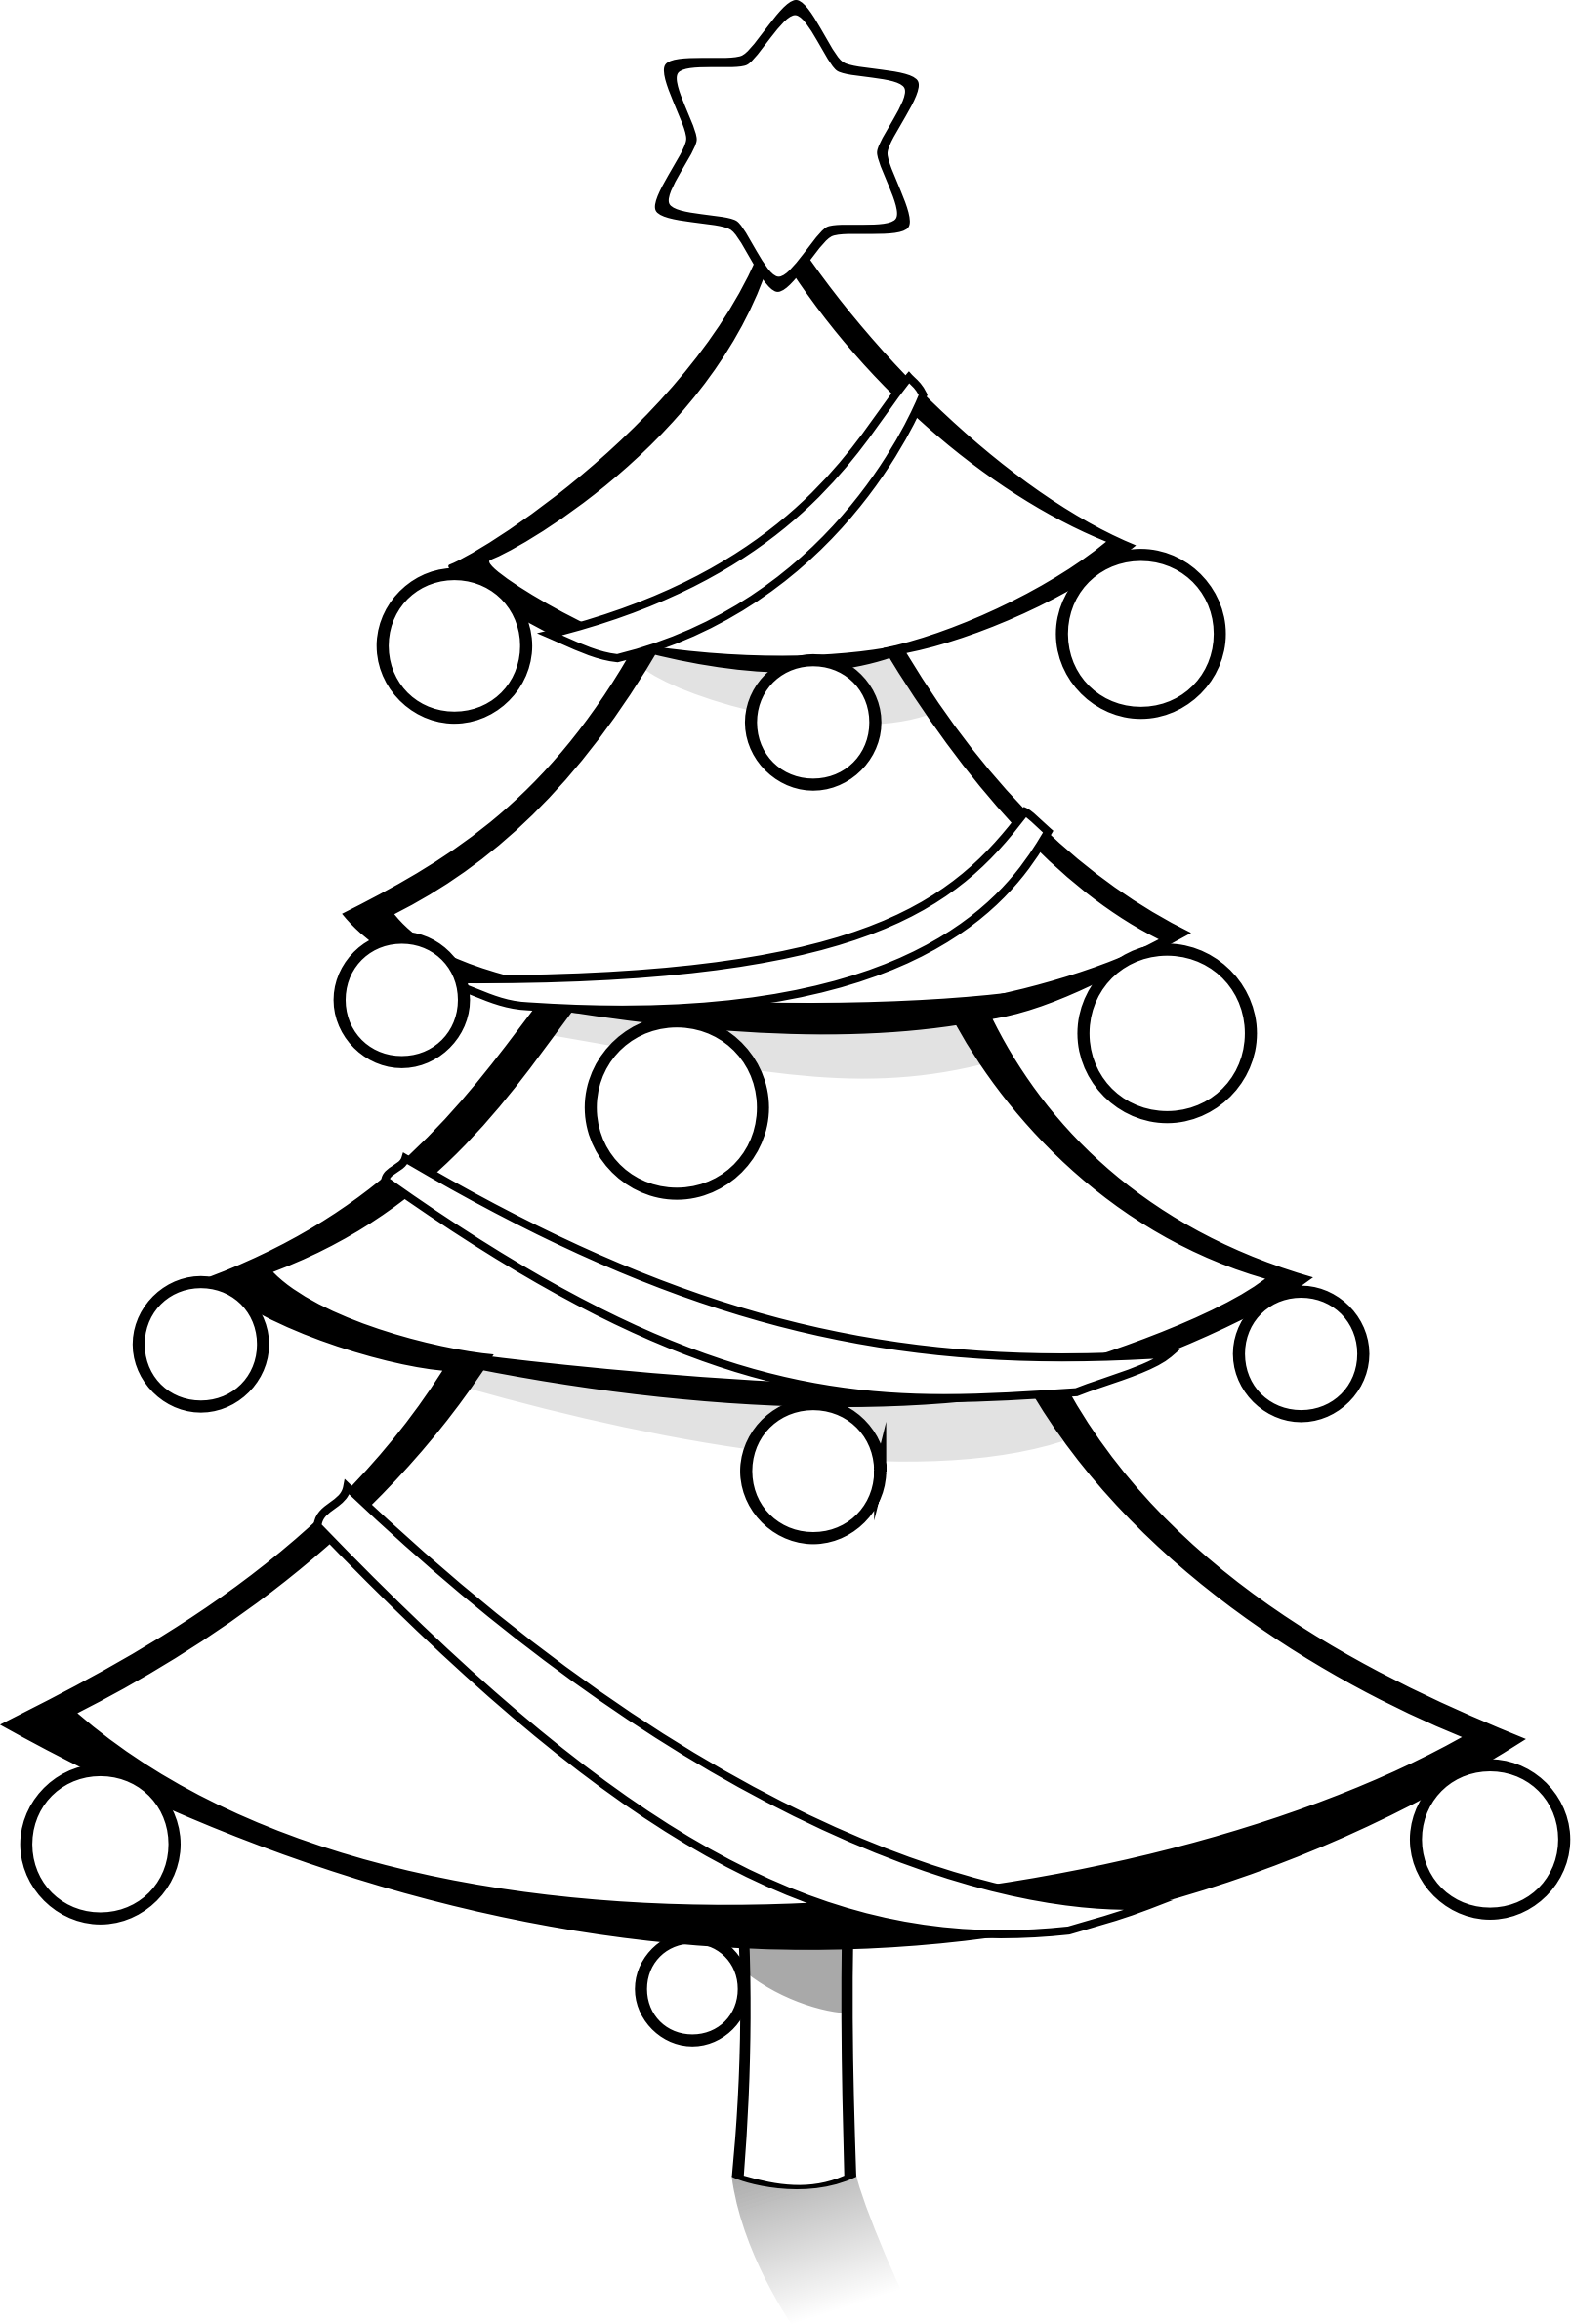 Tree coloring page big. Sports clipart christmas